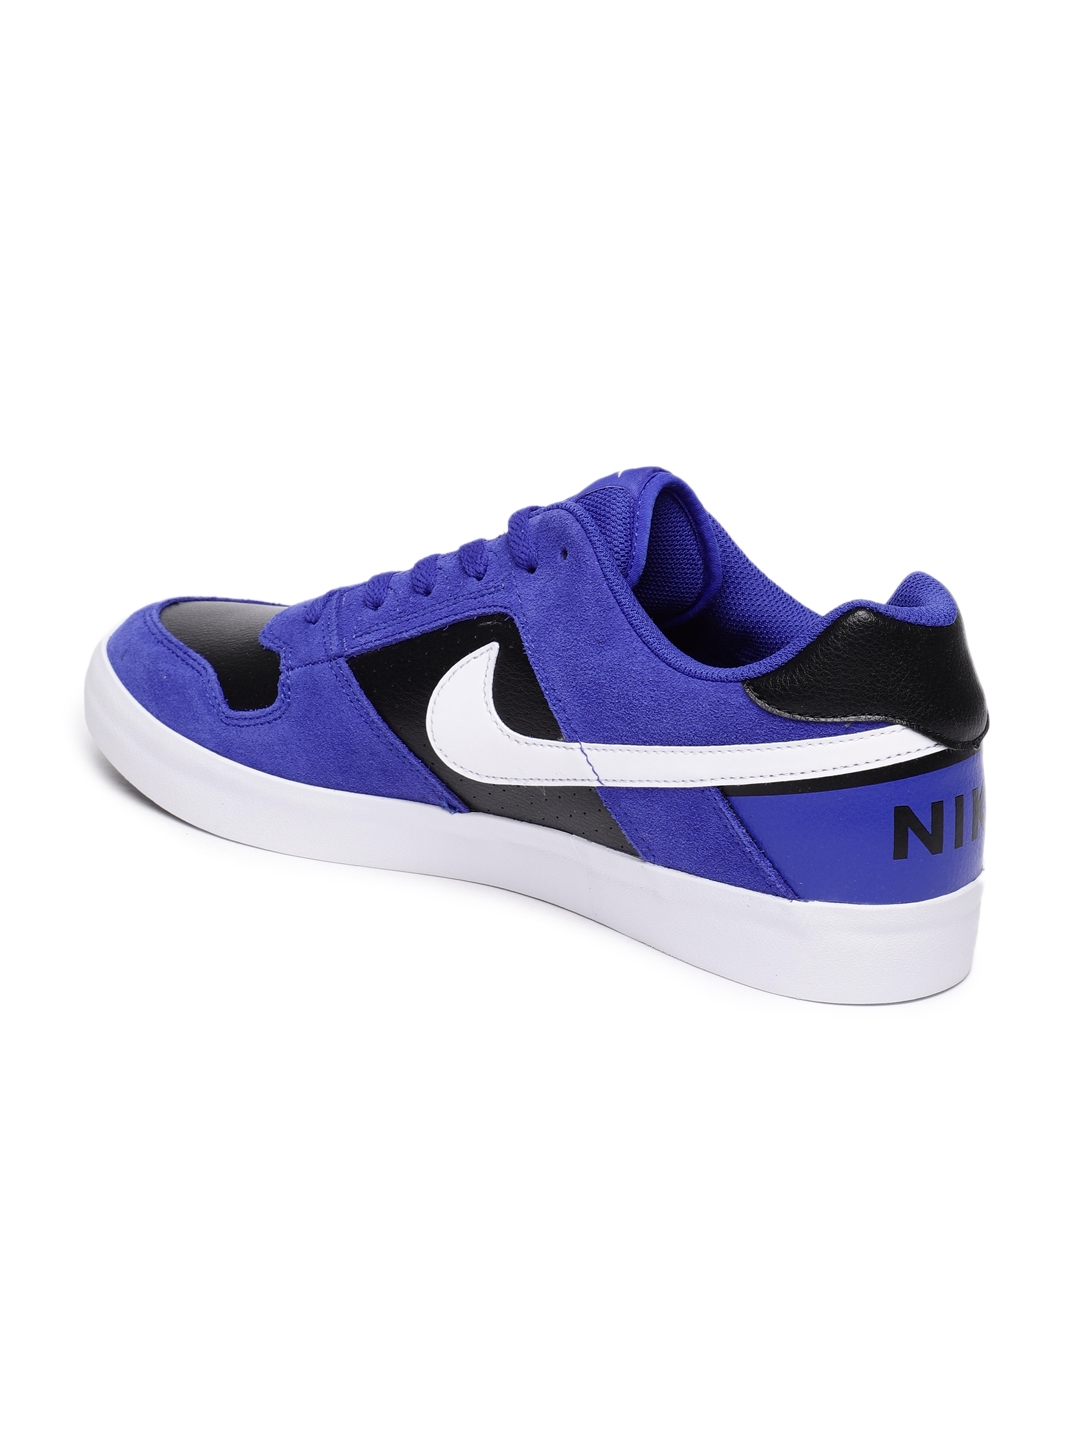 e48803e81462f6 Buy Nike Men Blue   Black SB Delta Force Vulc Leather Skateboarding ...